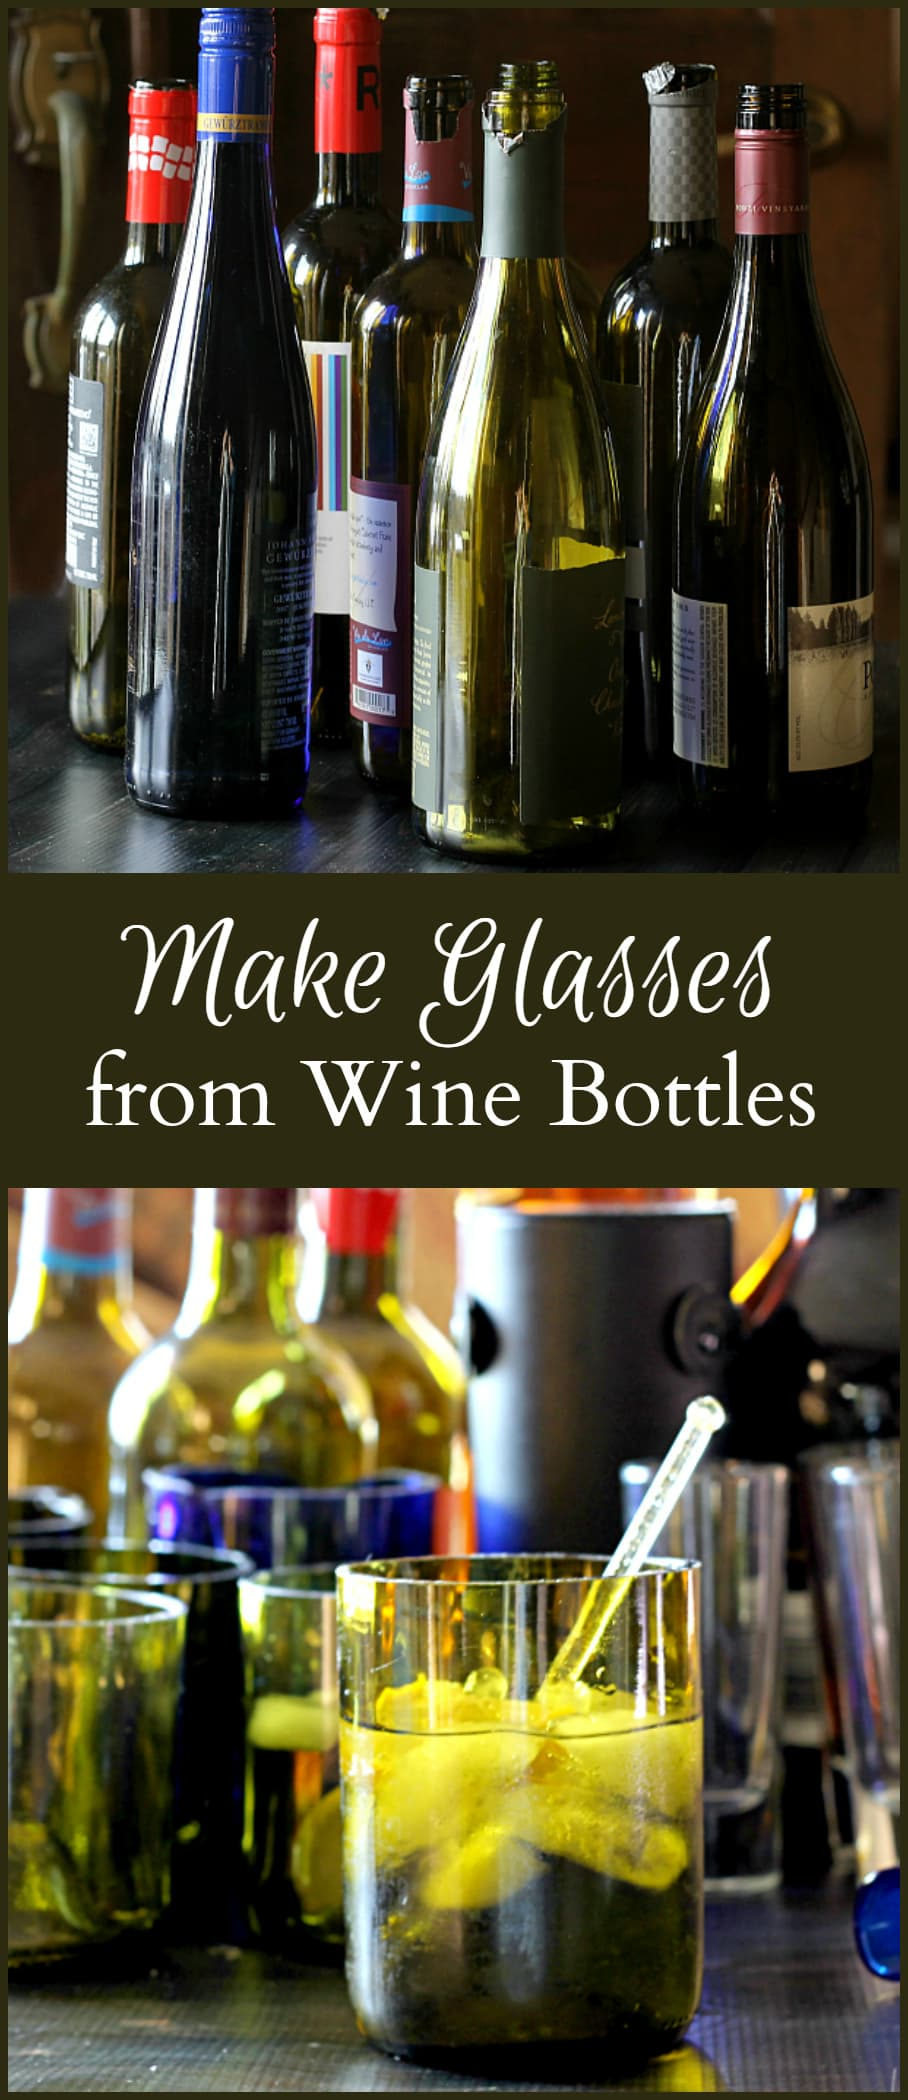 Recycled wine bottle glasses - This Tutorial Shows You How To Make Drinking Glasses From Recycled Wine Bottles The Process